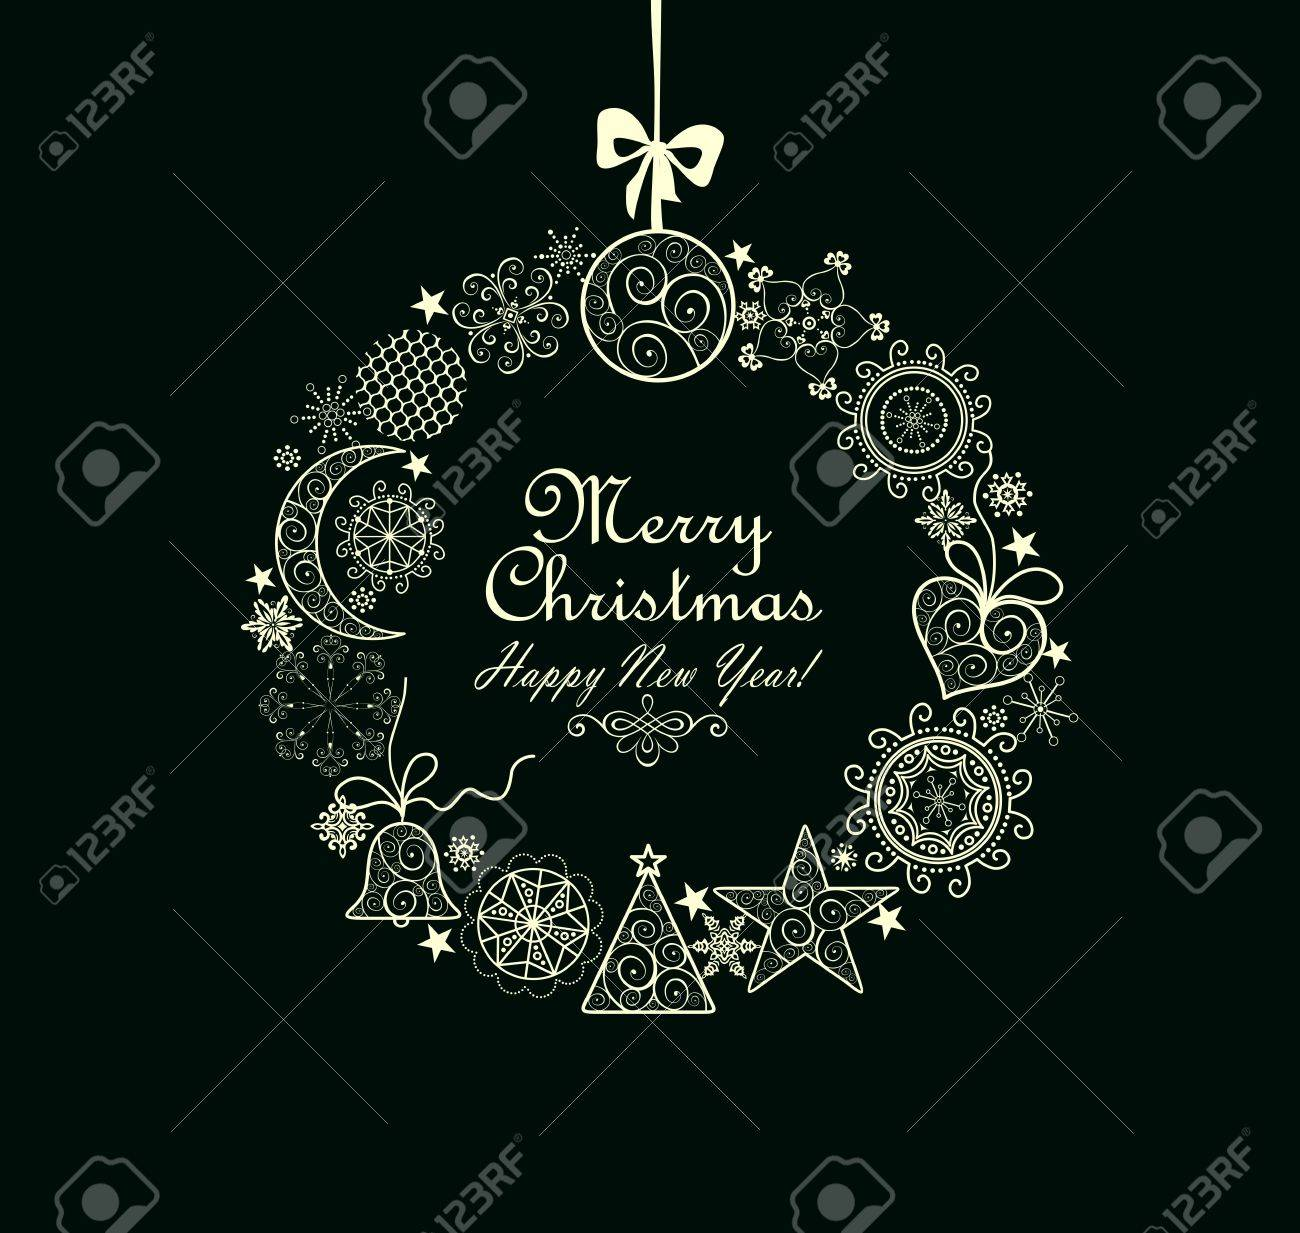 Greeting card with xmas wreath - 43825566